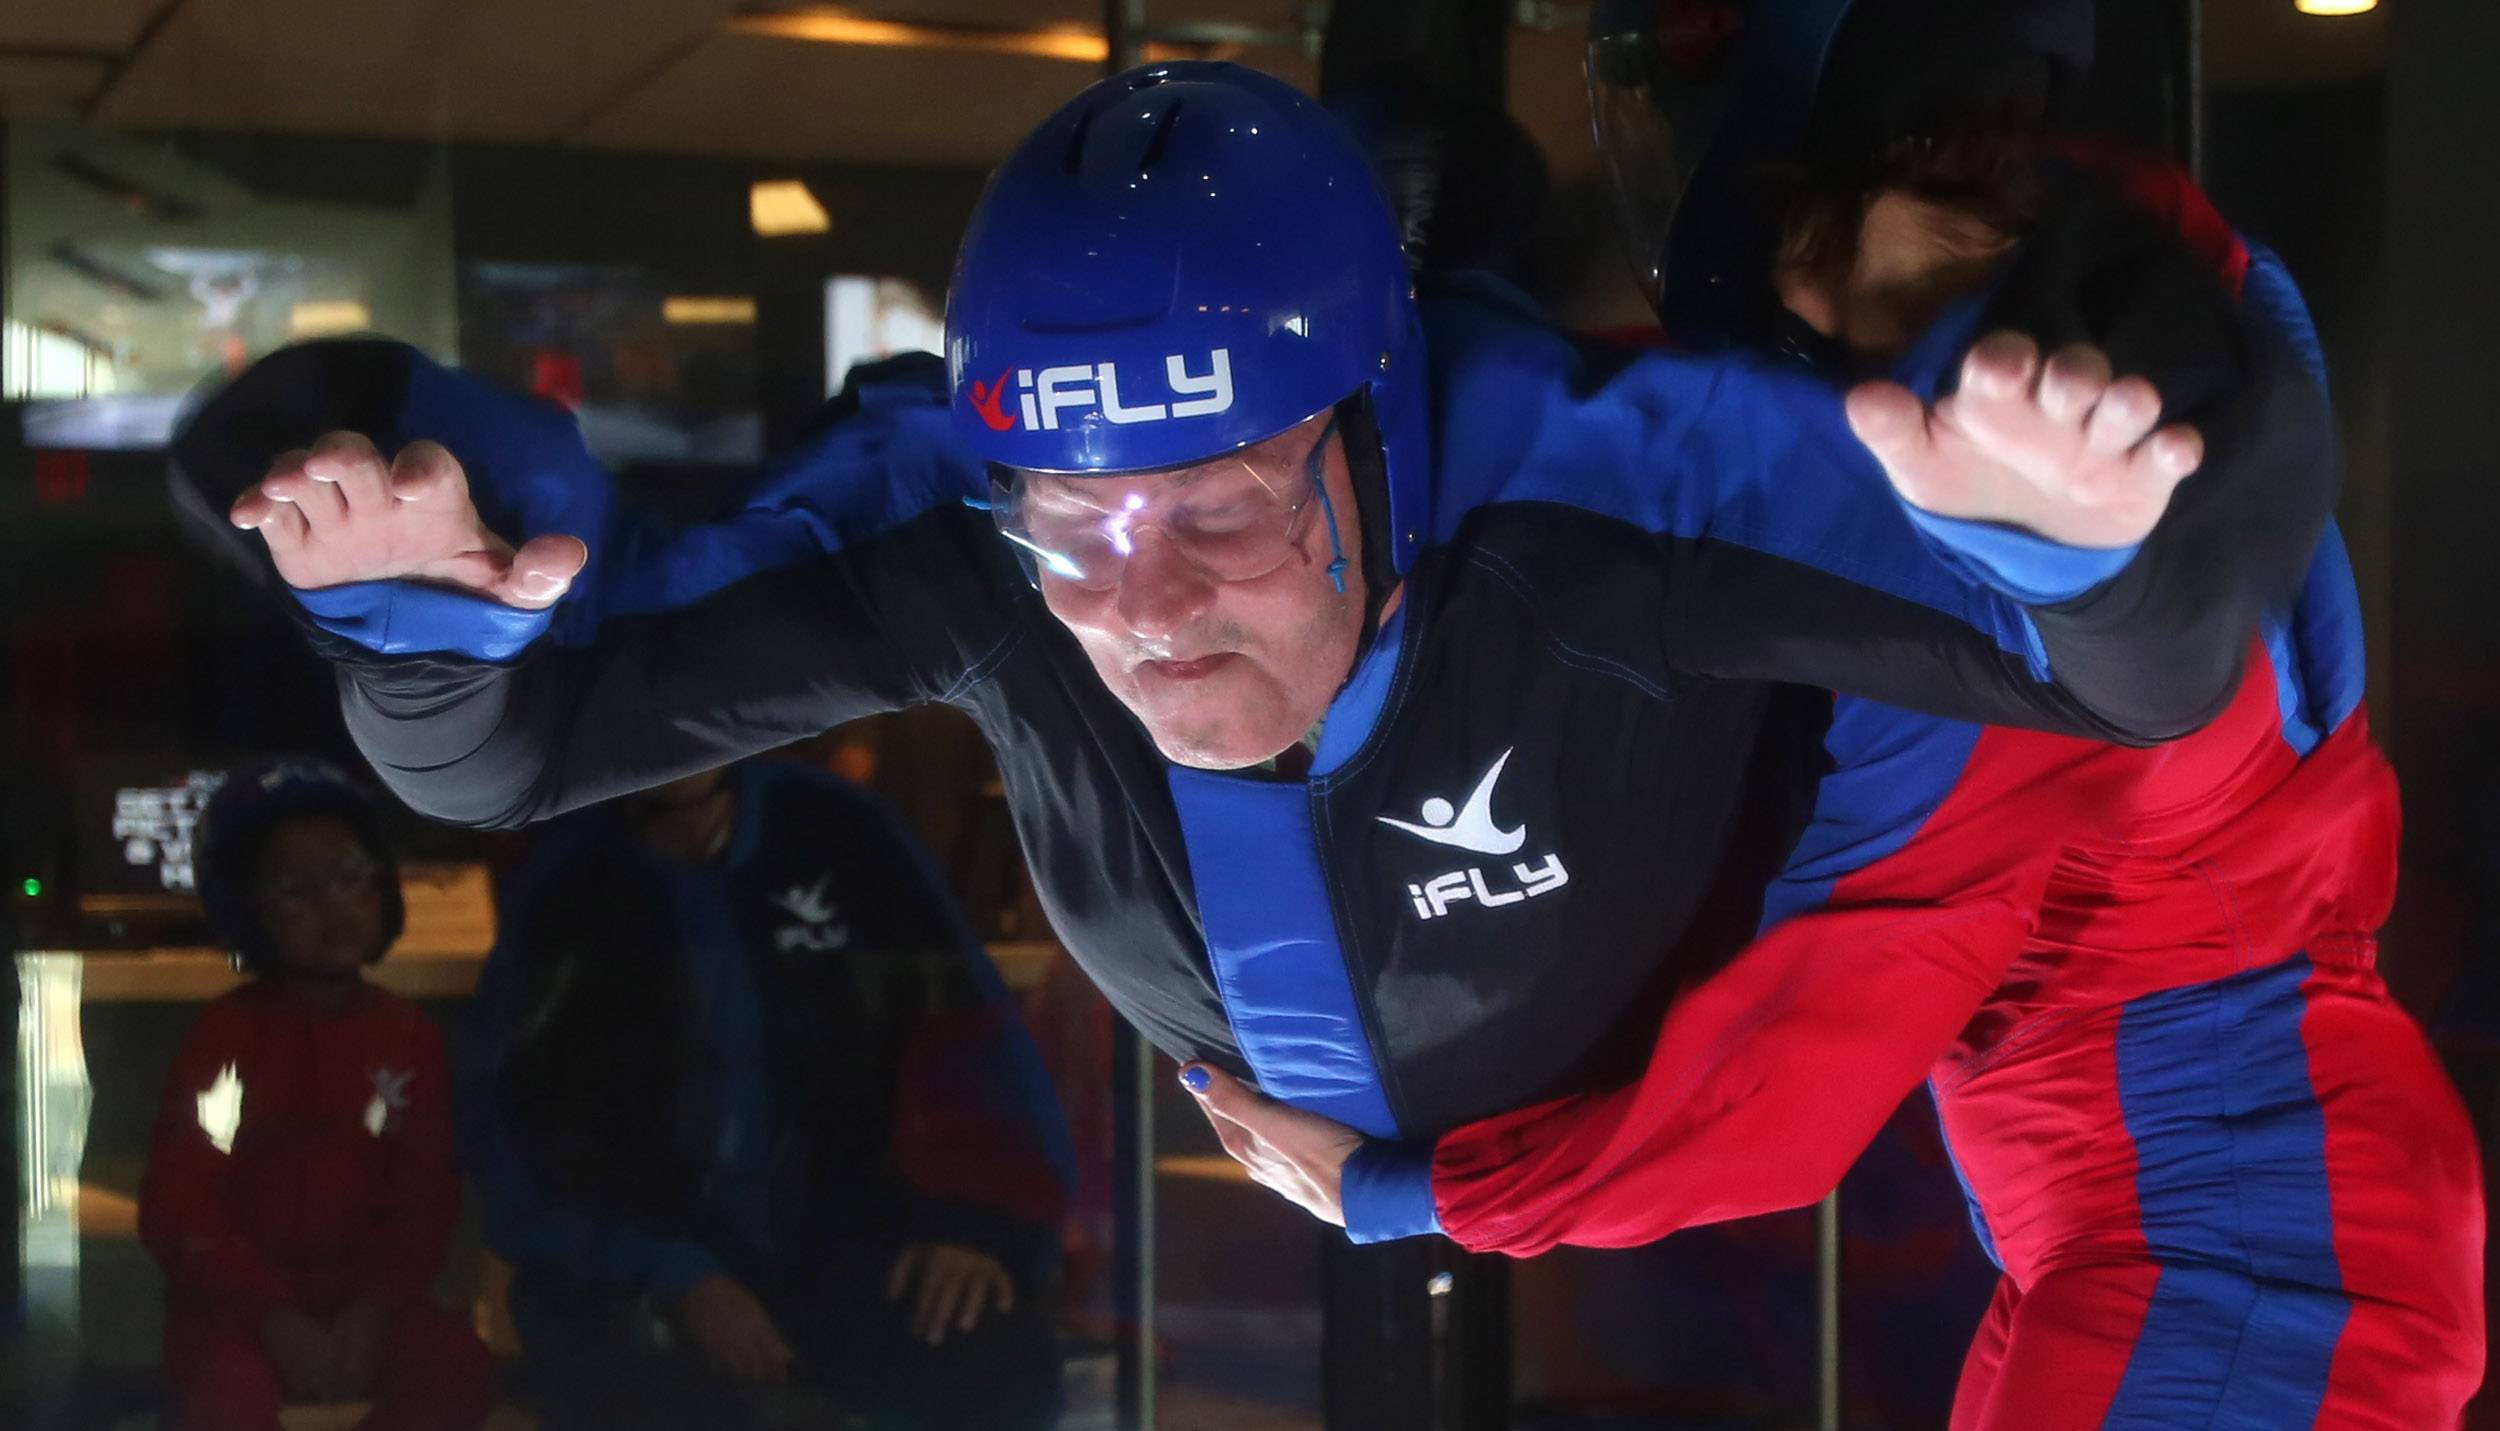 Otto Becker, 67, of Aurora, is blind but still wants to experience the rush of indoor sky diving at ifly in Naperville.